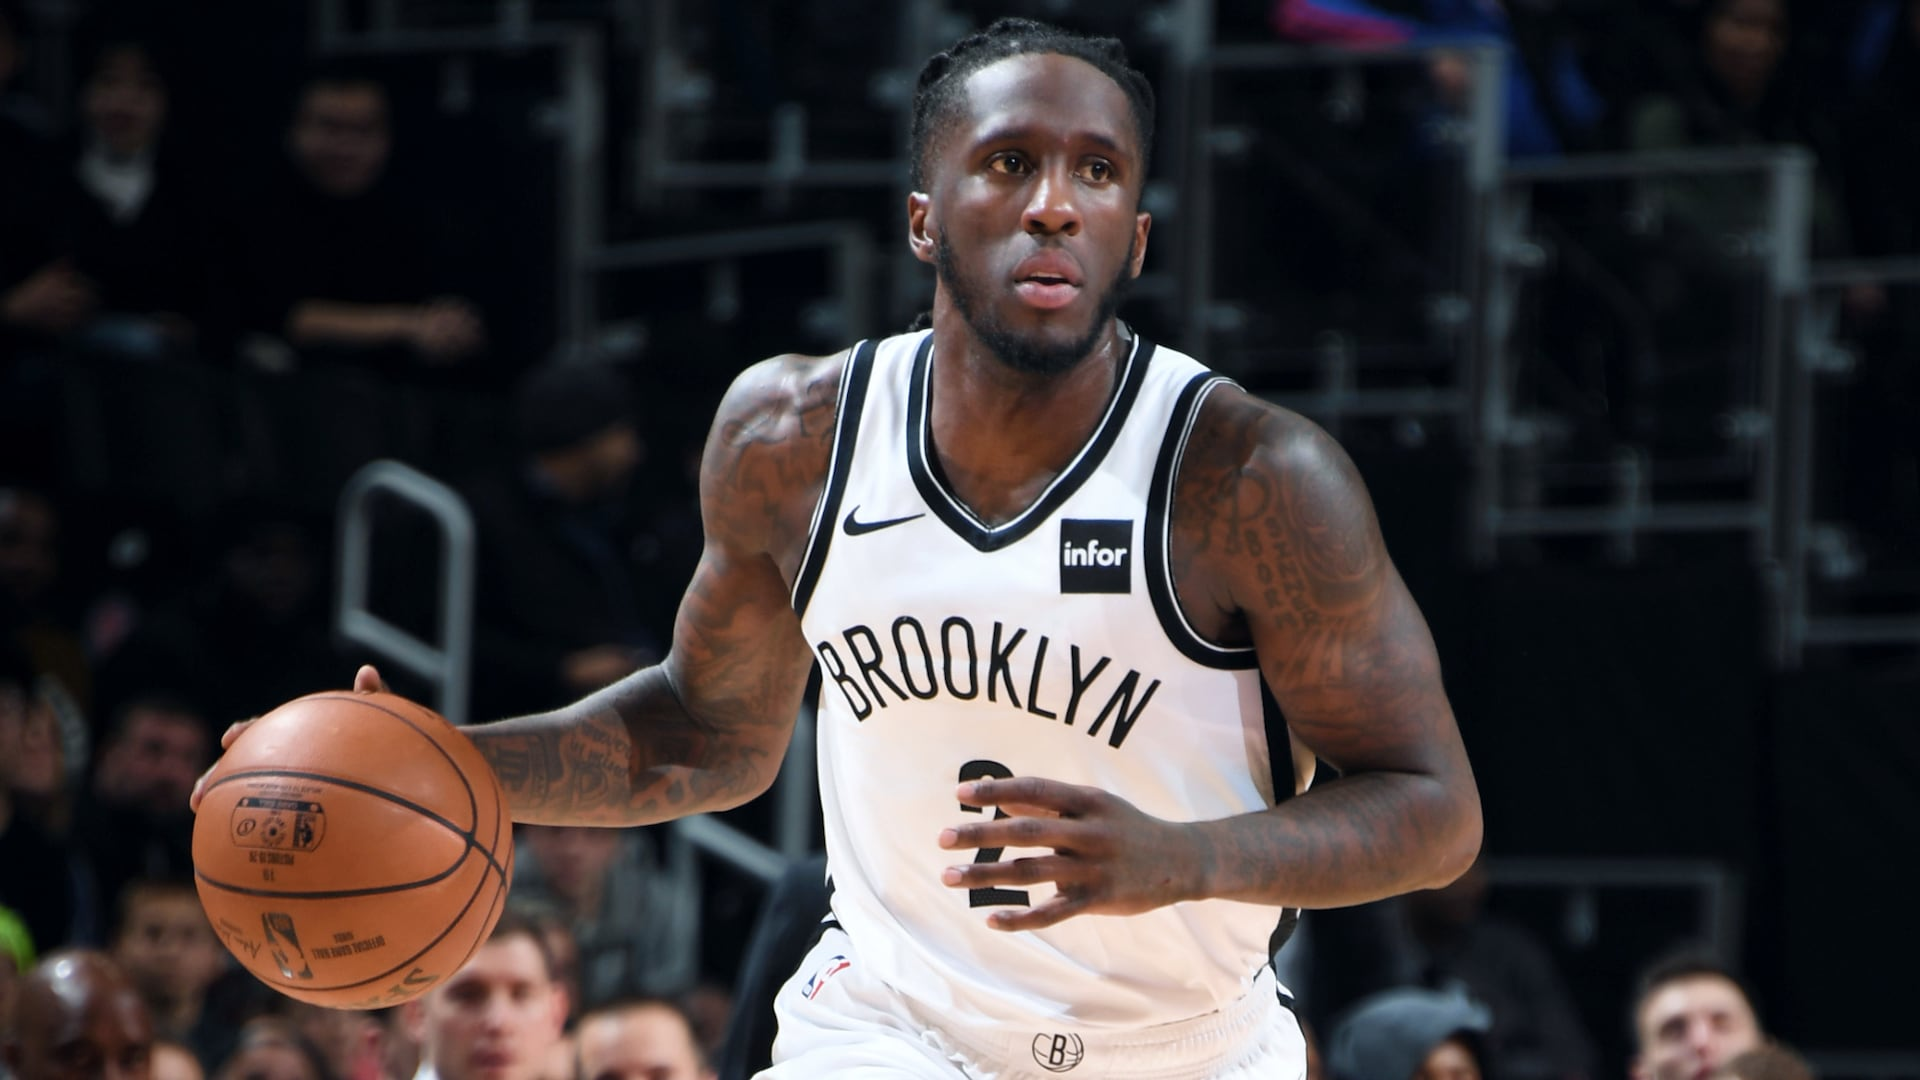 Report: Taurean Prince tests positive, won't play in Orlando